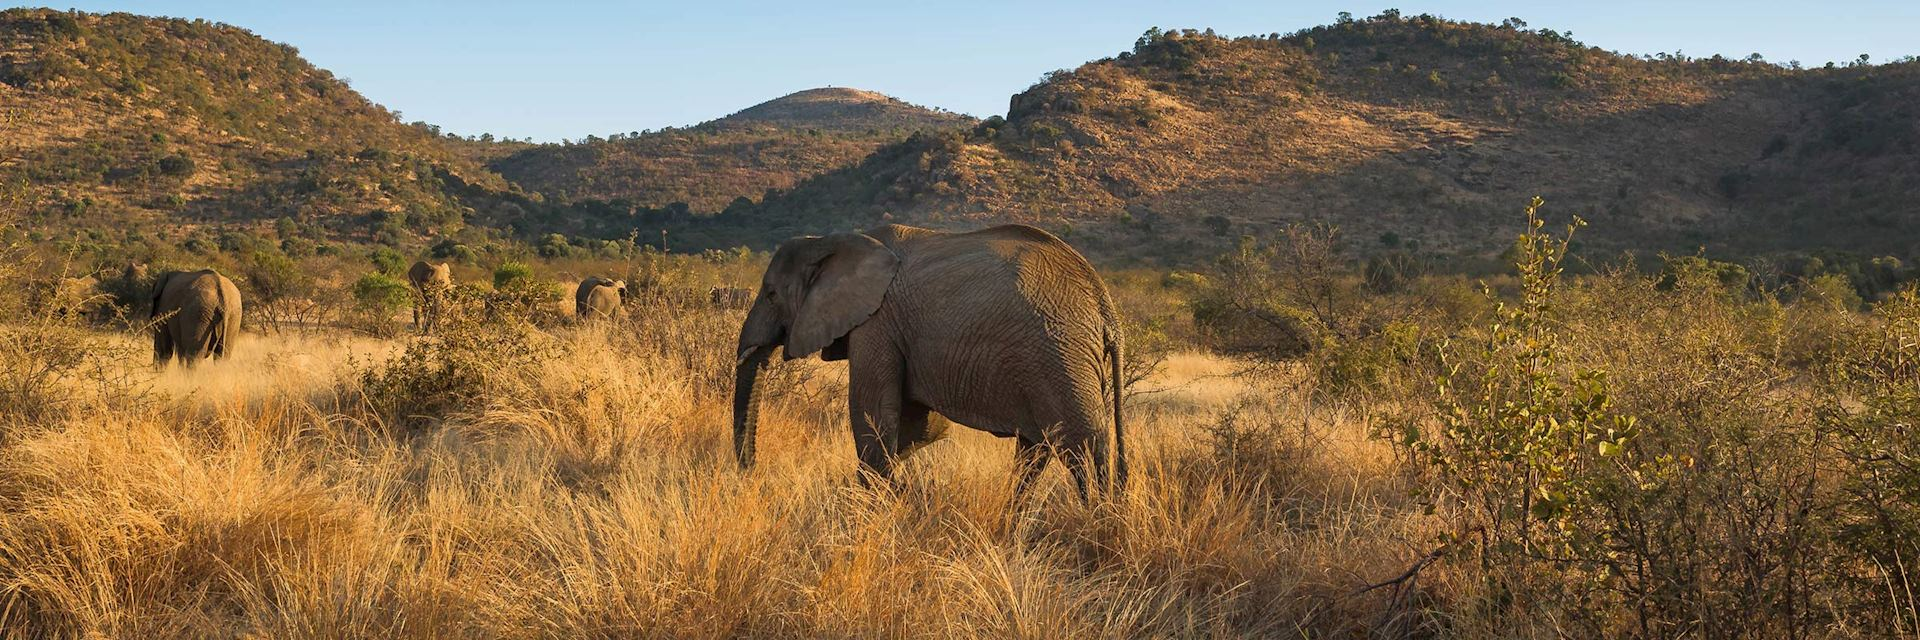 Elephants in Pilanesberg National Park